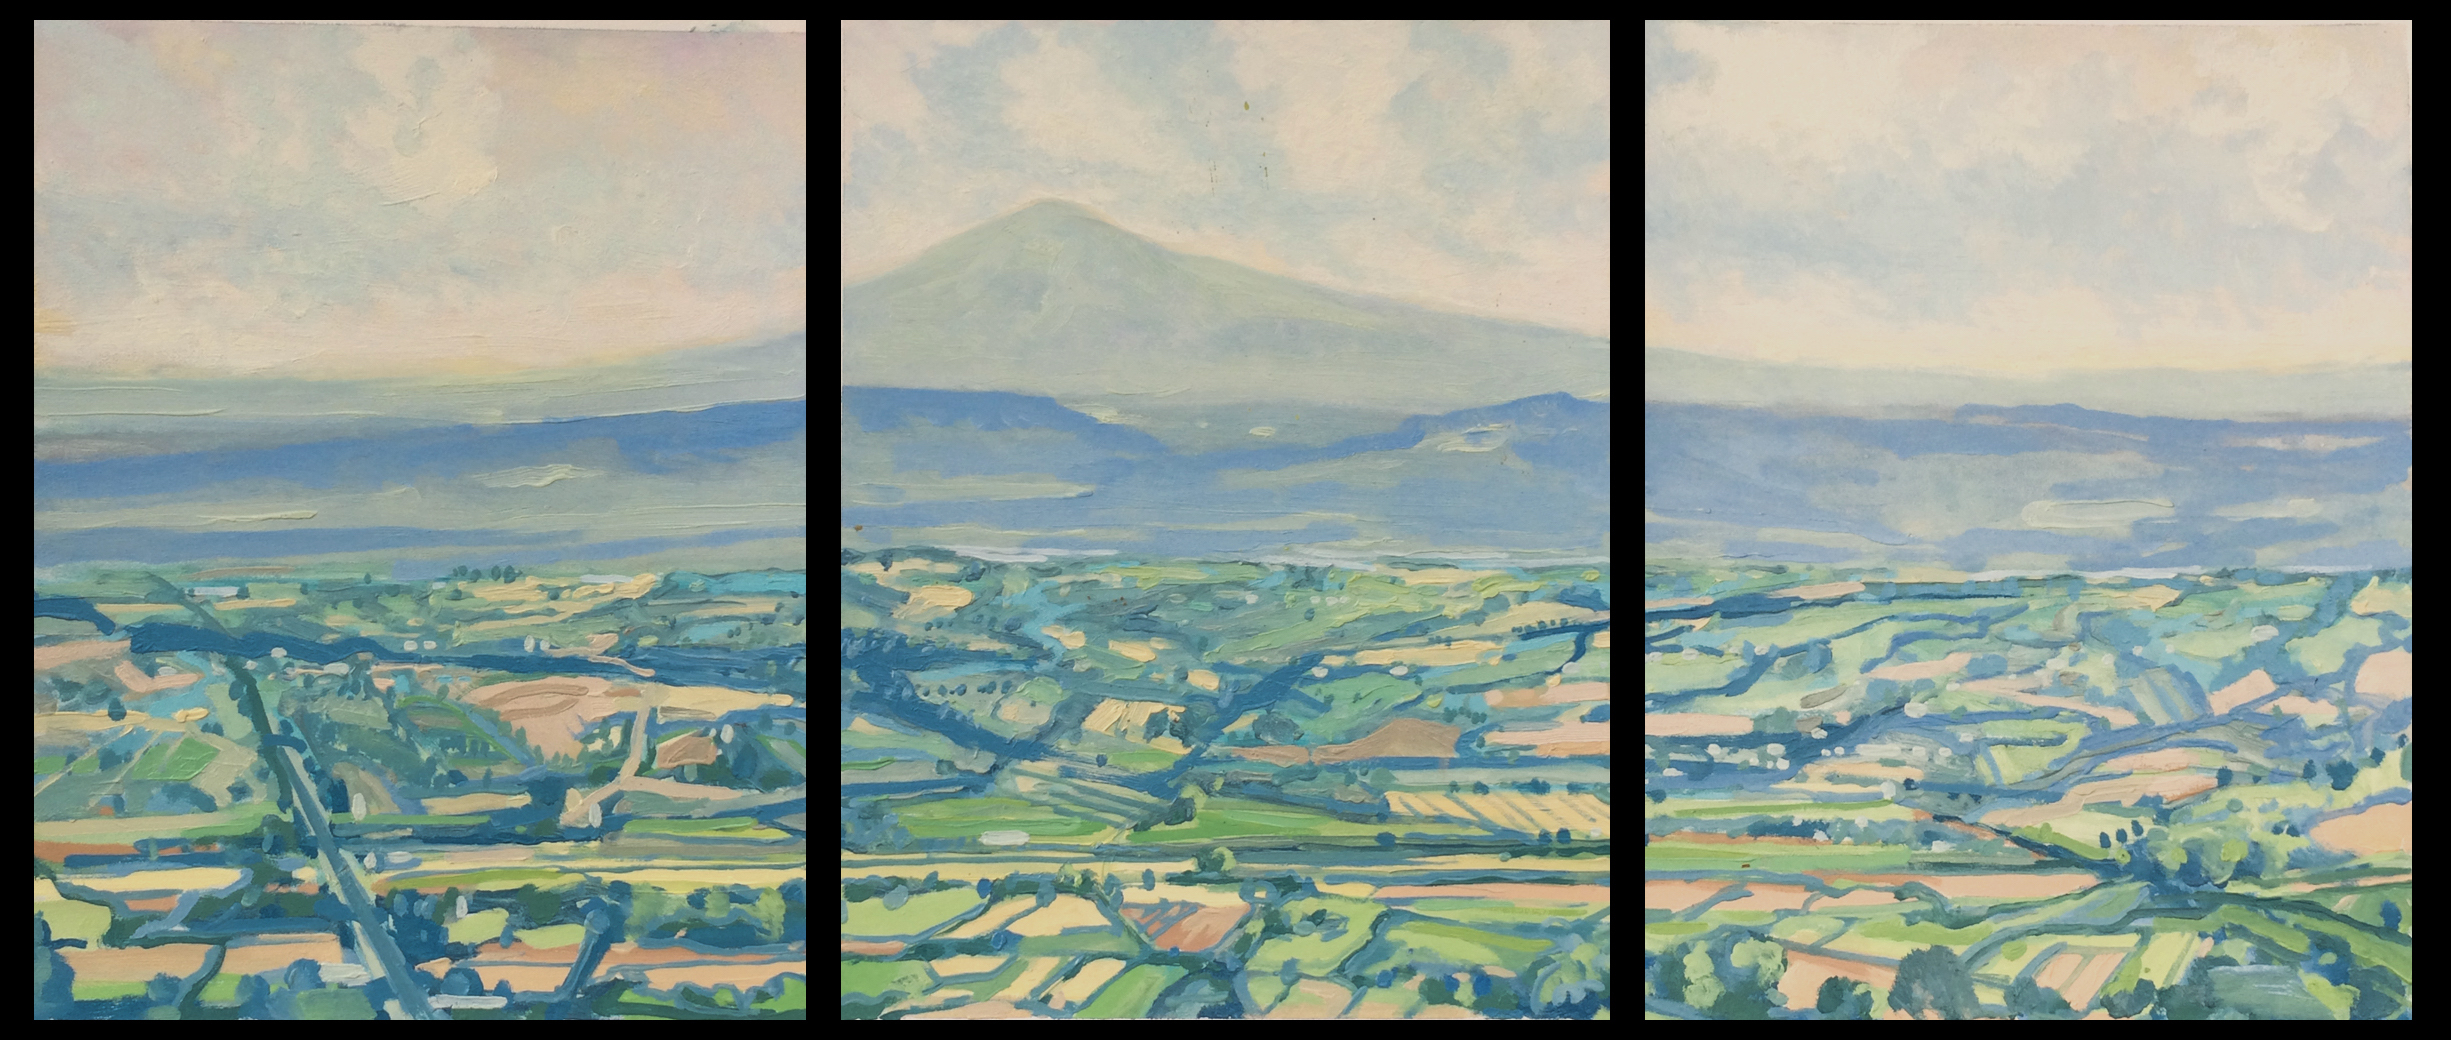 """Paul Reuther; Amiata triptych; 3 panels, each 14"""" x 11"""" ; 2017;  oil on archival paper on panel"""